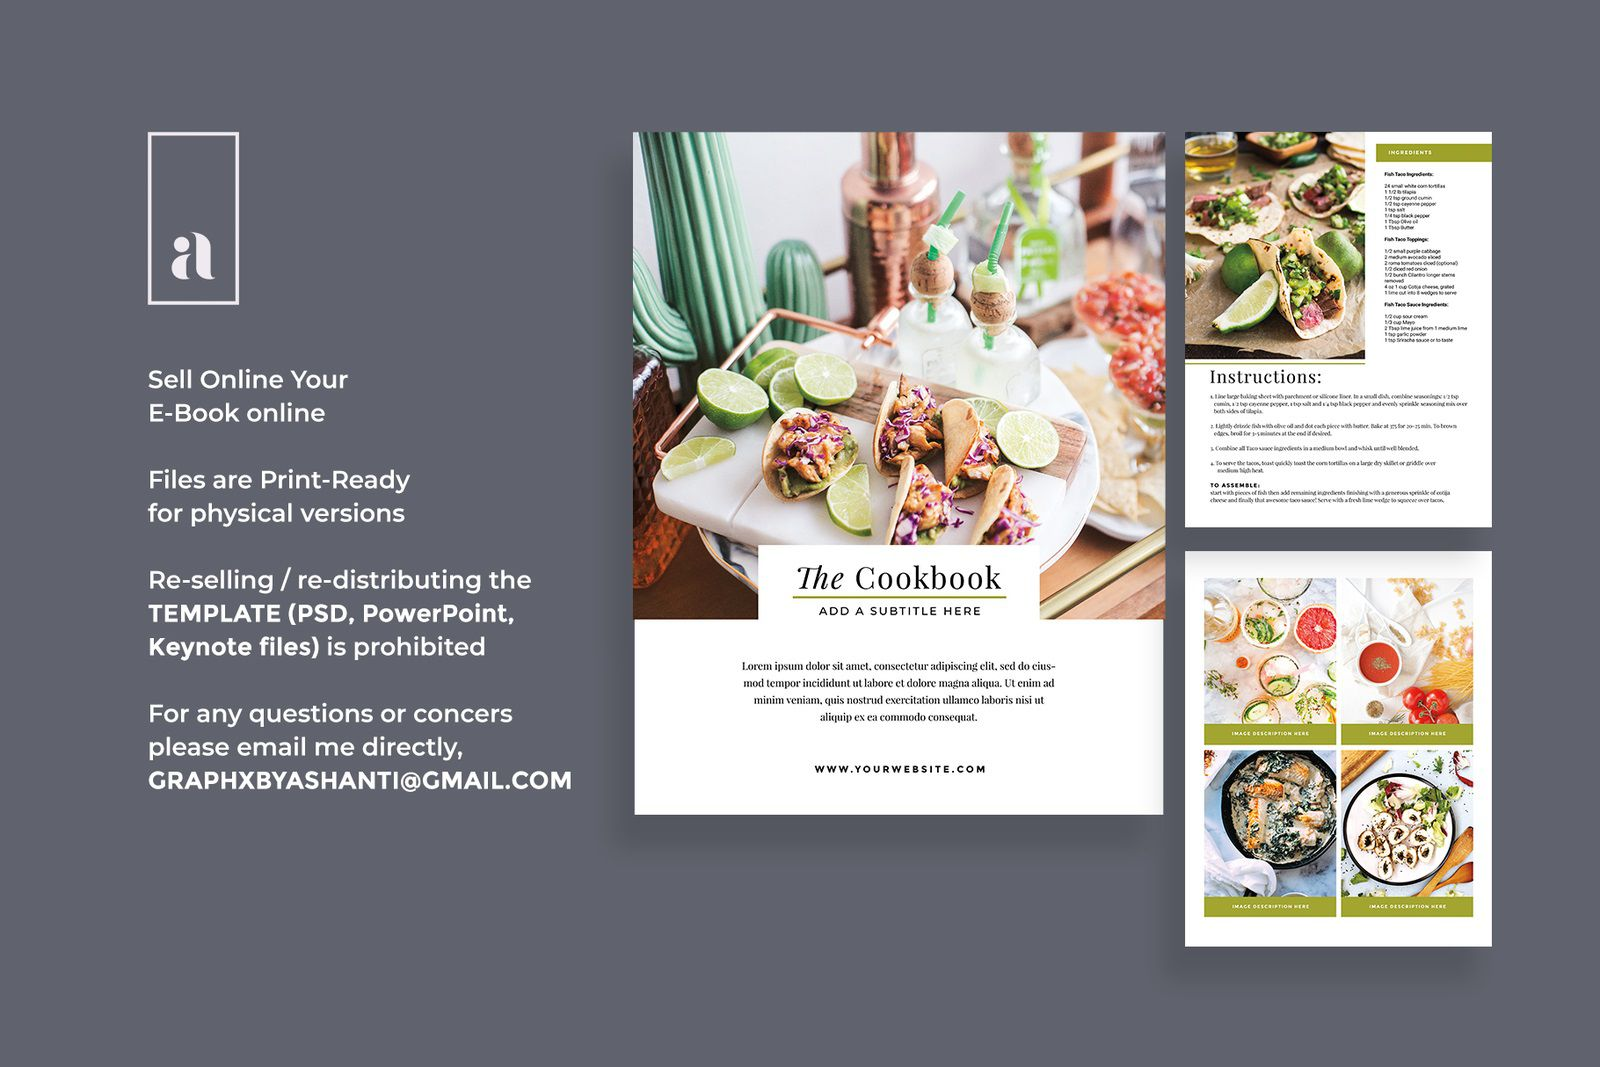 004 Magnificent Create Your Own Cookbook Free Template Design Full